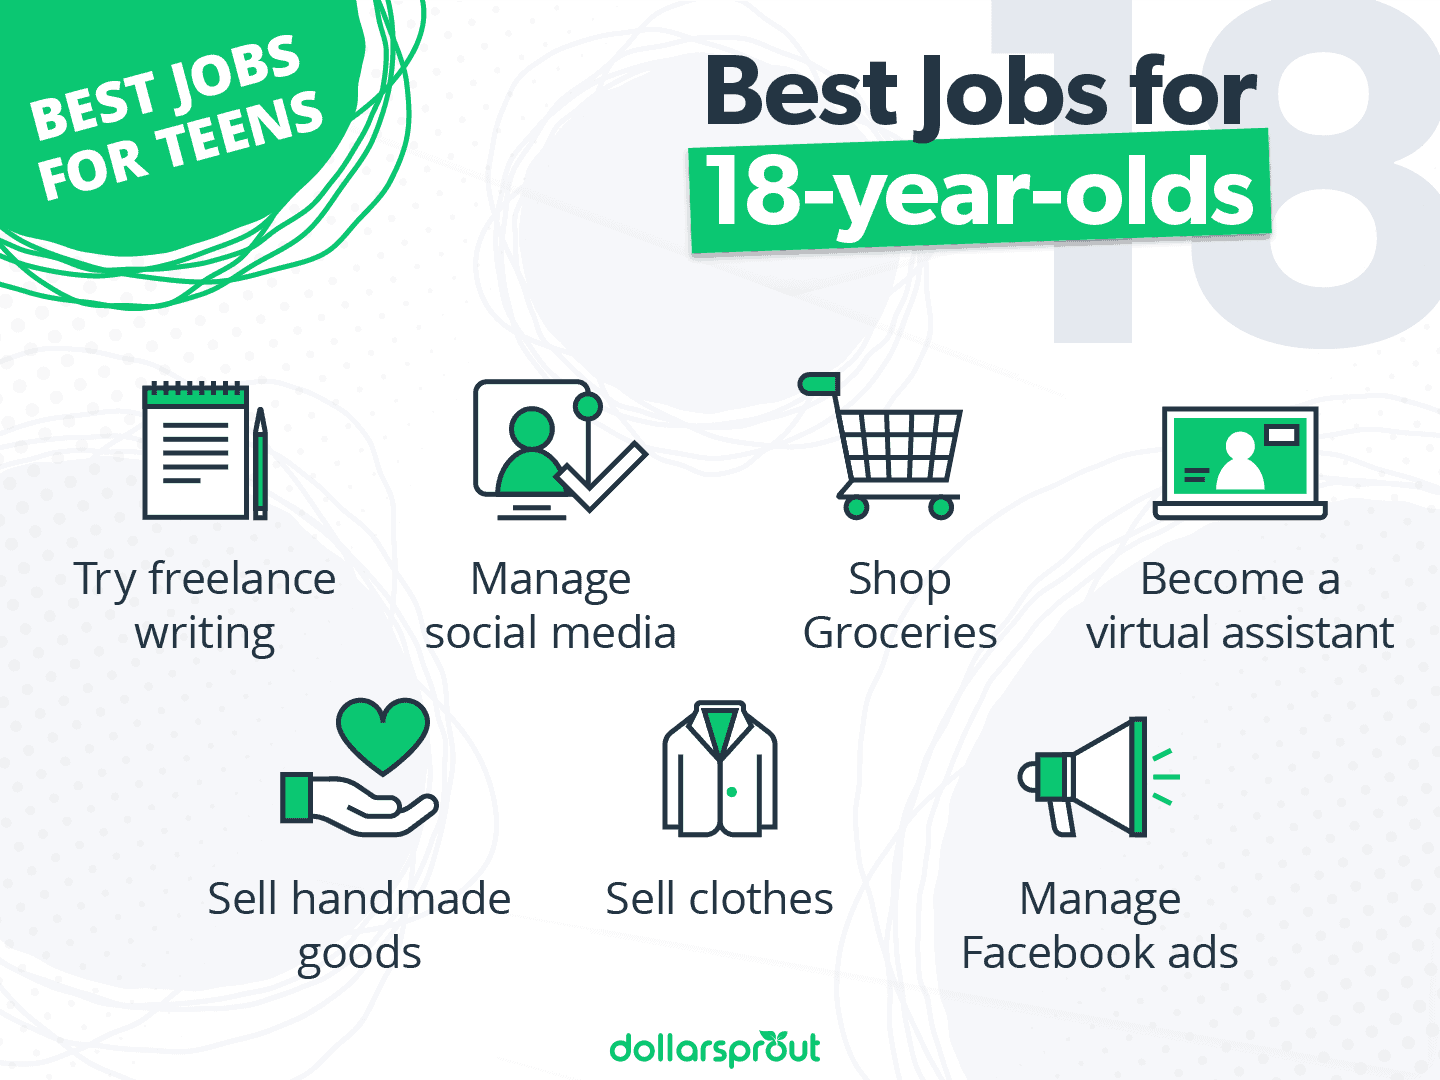 Best Jobs for 18-year-olds